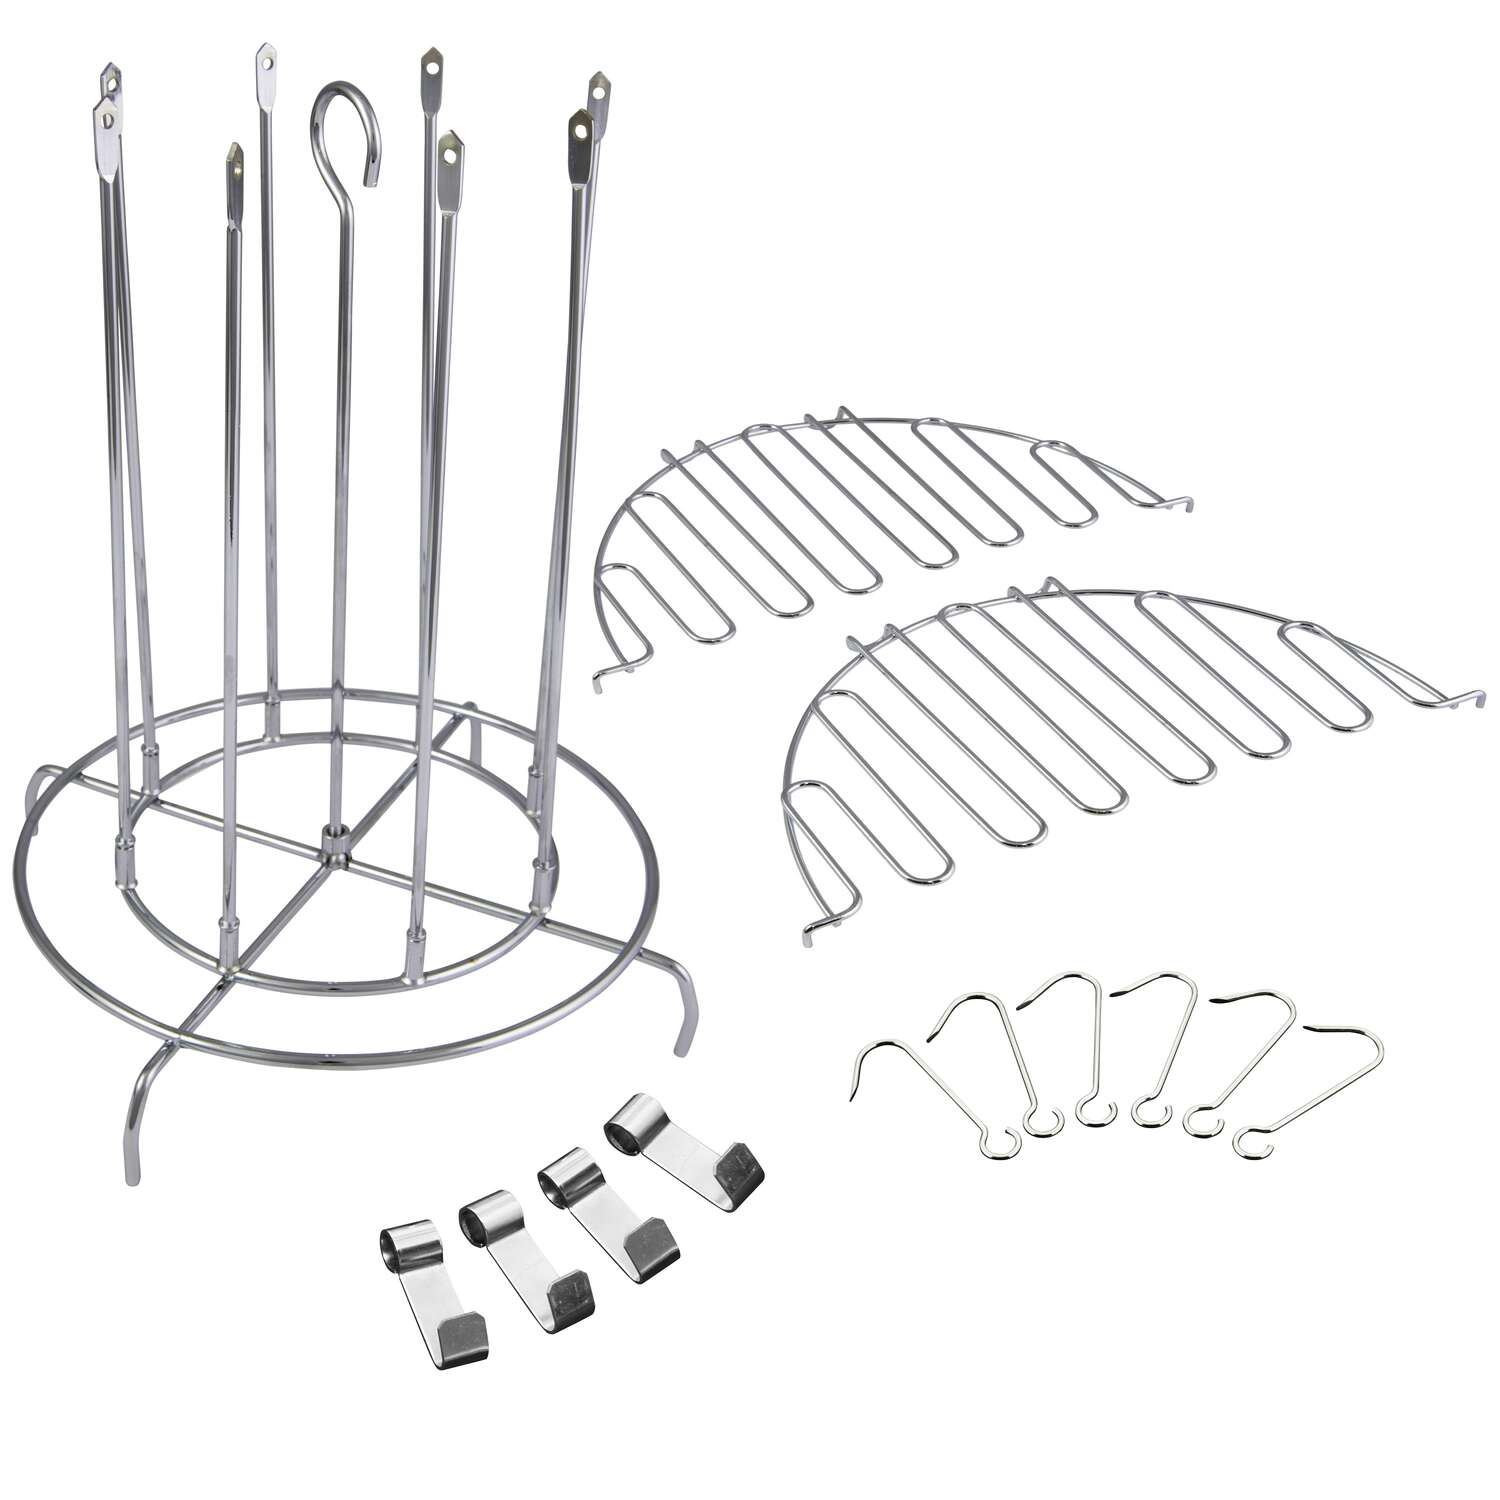 Char-Broil  Big Easy  Cold Rolled Steel  Turkey Fryer Kit  16 lbs.